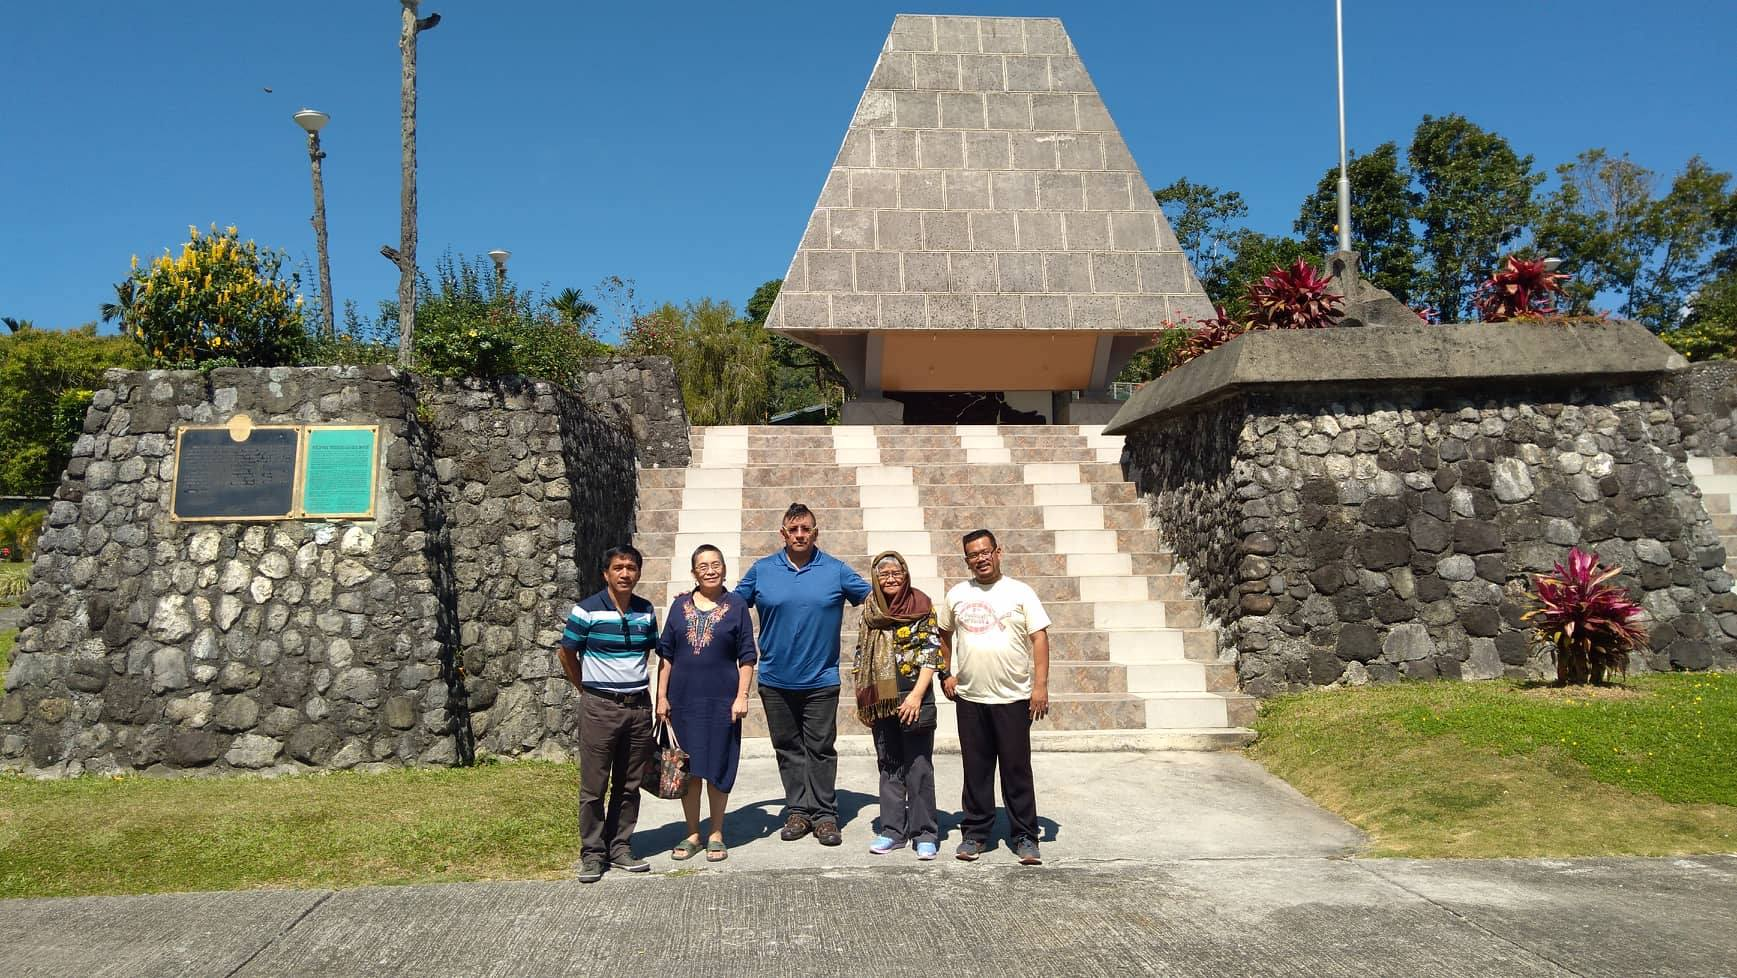 At the WWII memorial in Ifugao. From left to right: Pastor Ruben Pugudon, Ma'am Edna Orteza, Juan Lopez, Dr. Ruth De Lara and Jason Carperas.